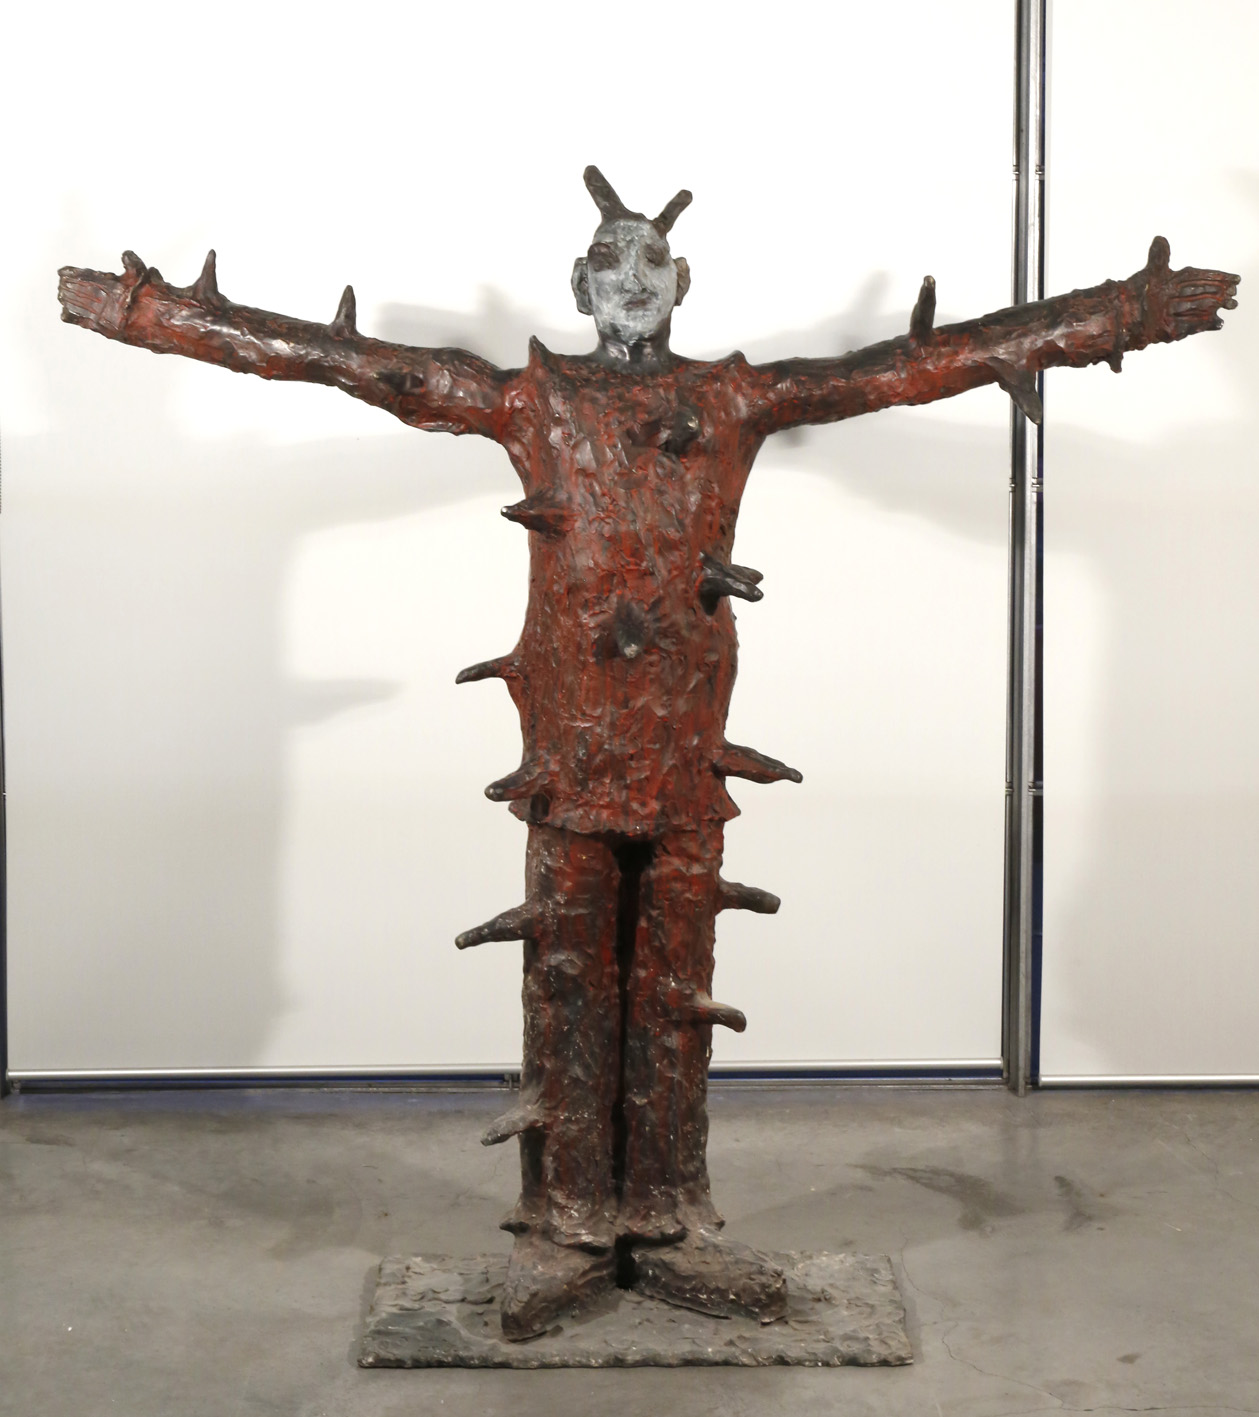 Joe Furlonger   Spiky Man,  2006  bronze and coloured patina  171 x 183 x 44 cm